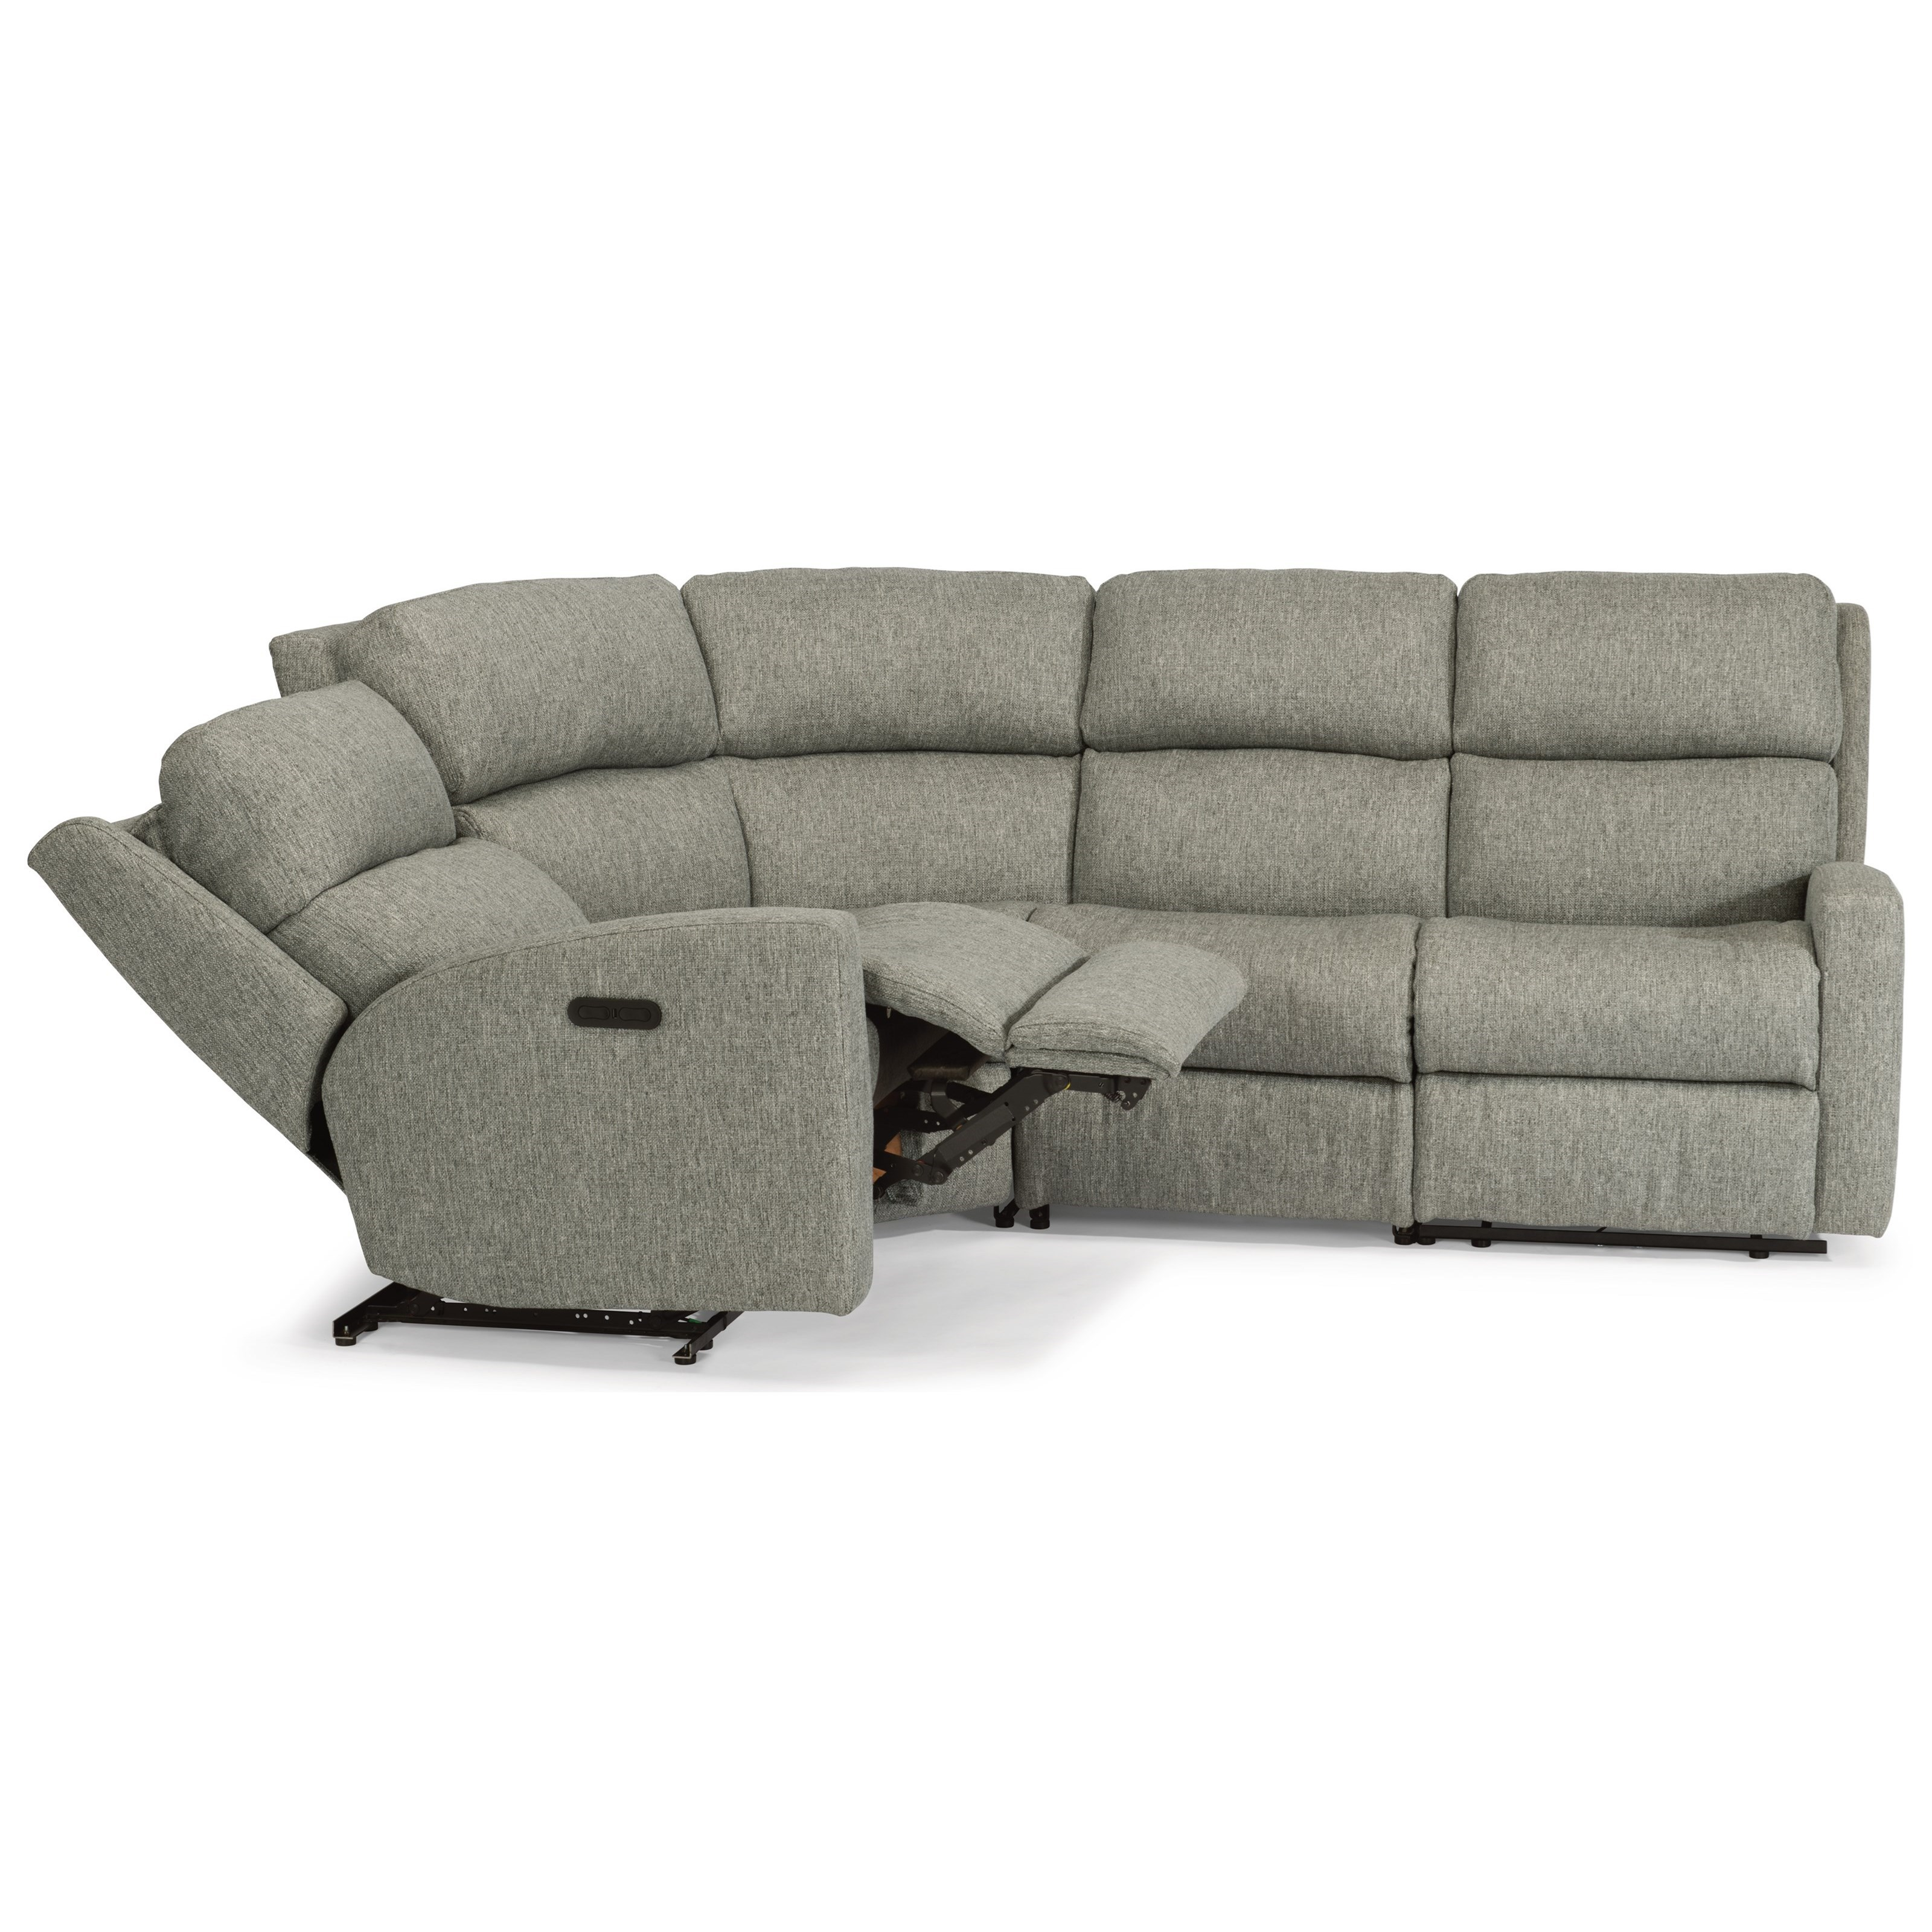 4 piece recliner sectional sofa how to make slipcovers for sofas flexsteel catalina four power reclining